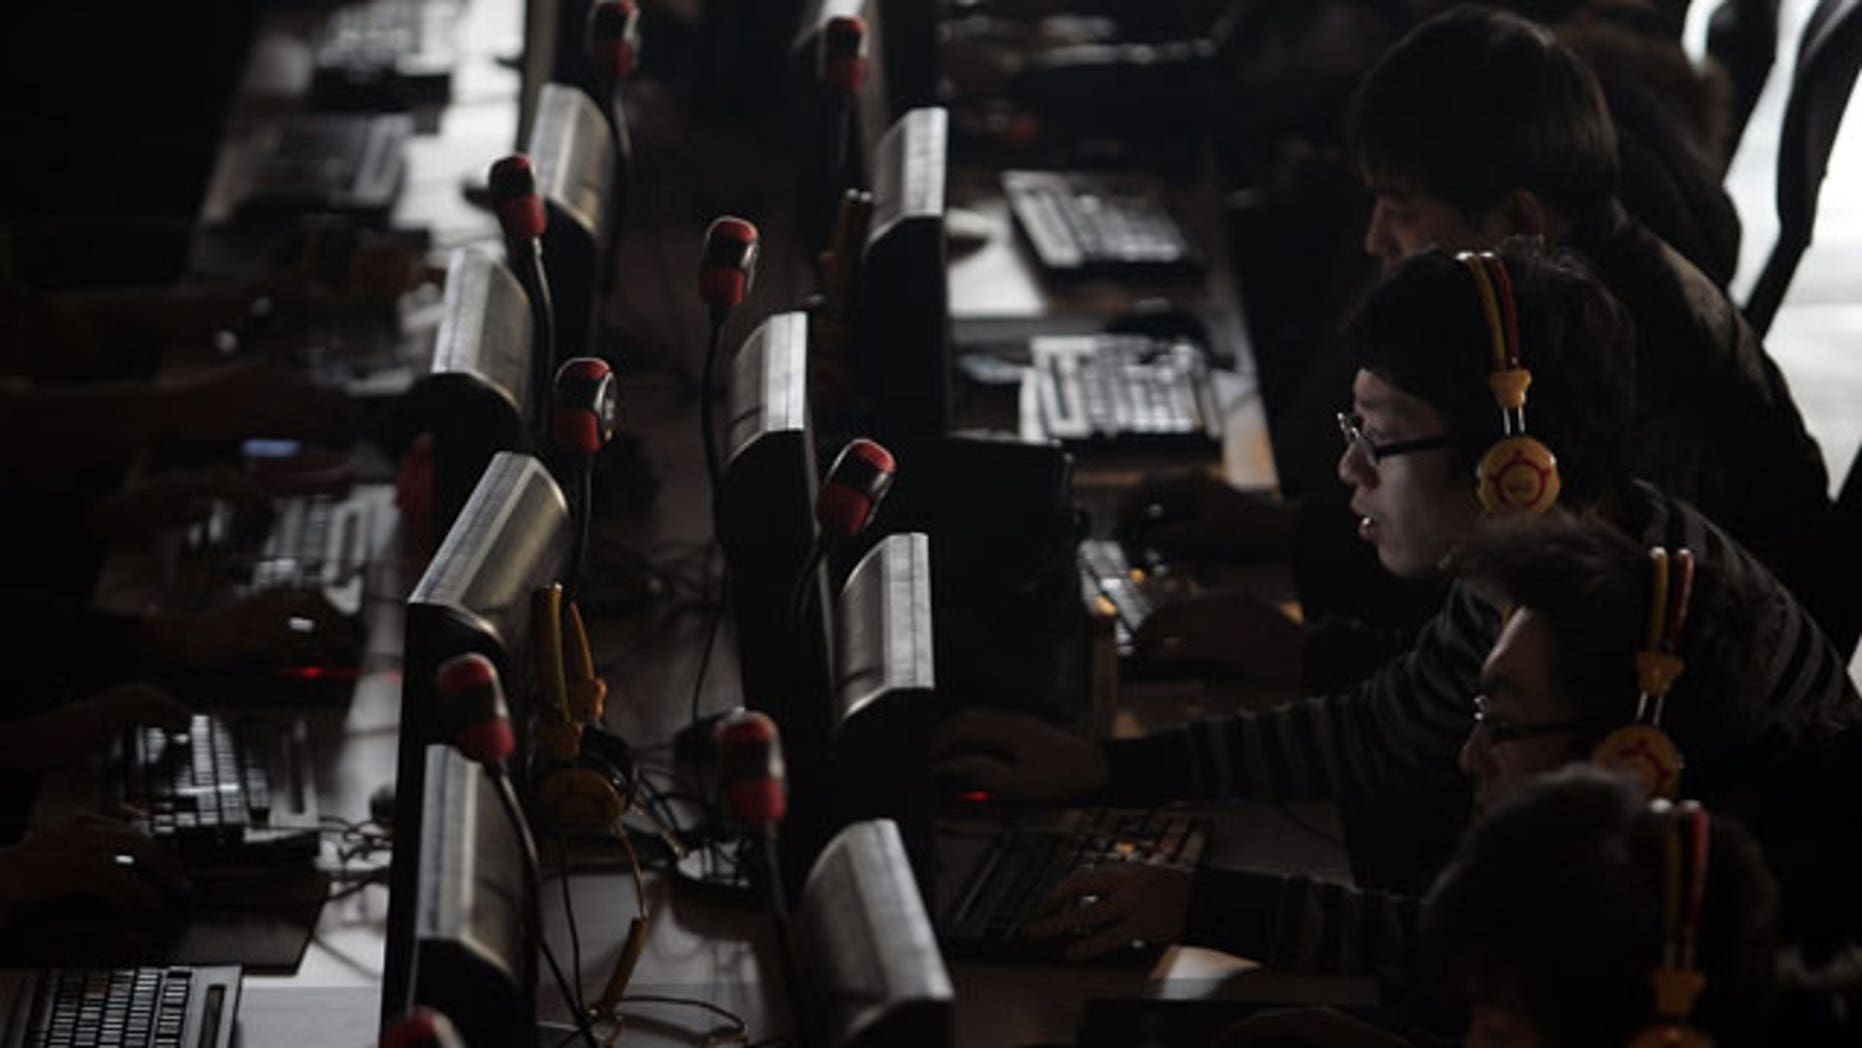 n this Jan. 25, 2010 file photo, people use computers at an Internet cafe in Taiyuan, in north China's Shanxi province. China is poised to pass a law requiring telecommunications and Internet companies to report any revelation of state secrets, potentially forcing businesses to collaborate with the country's vast security apparatus that stifles political dissent. The move to make communications companies monitor and inform on clients' activities, reported Tuesday, April 27, 2010, by state media, comes as China continues tightening controls on the Internet and telecommunications services.